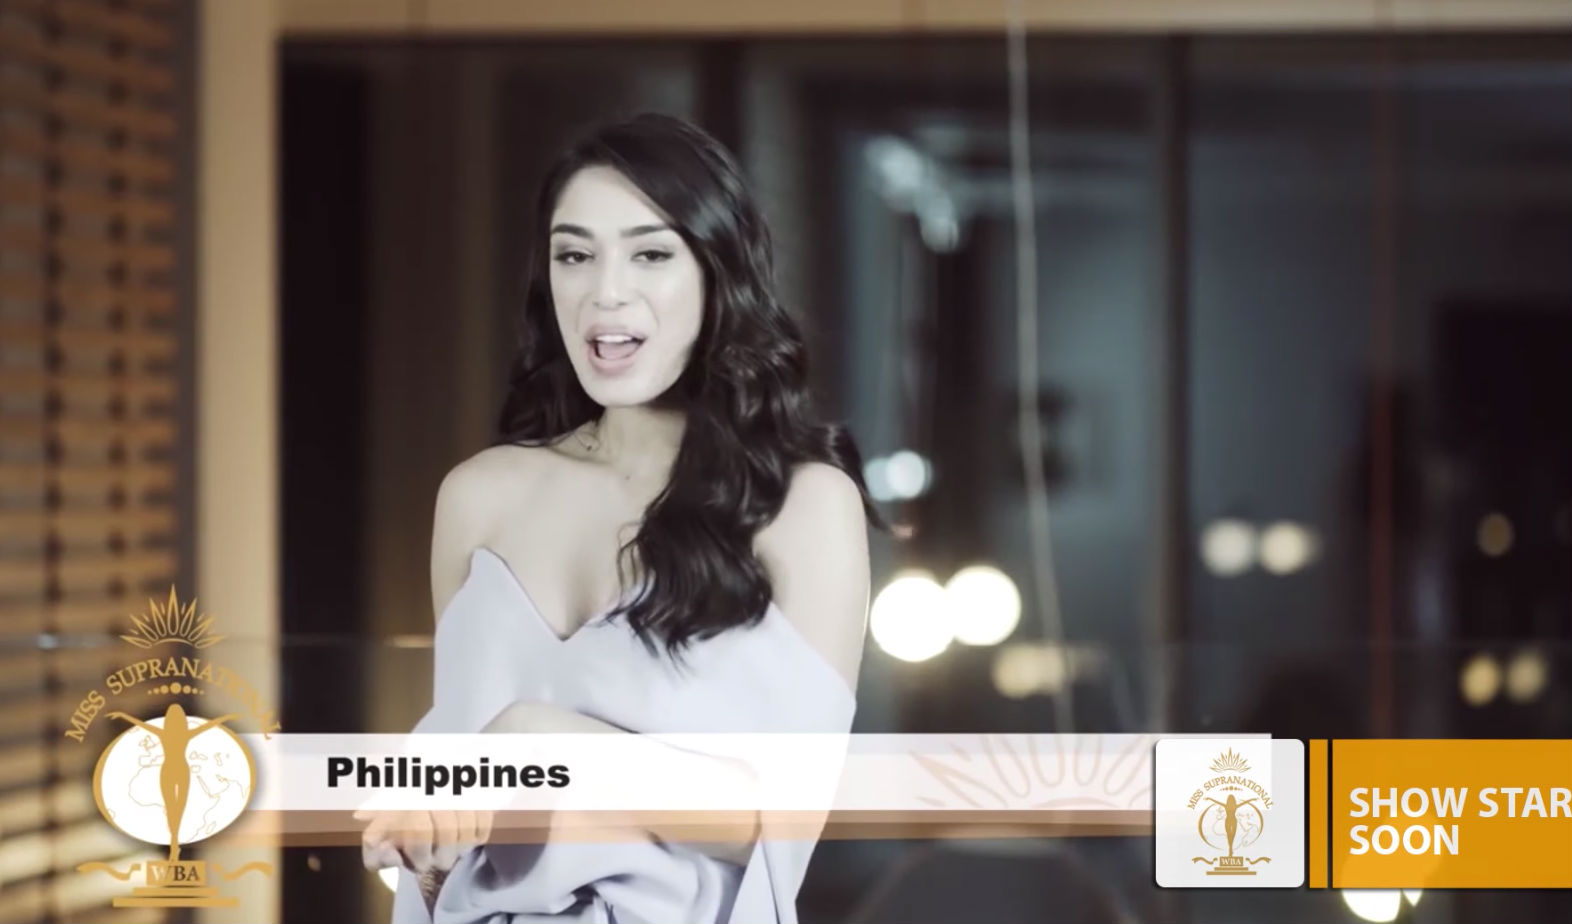 Screengrab from YouTube/Miss Supranational